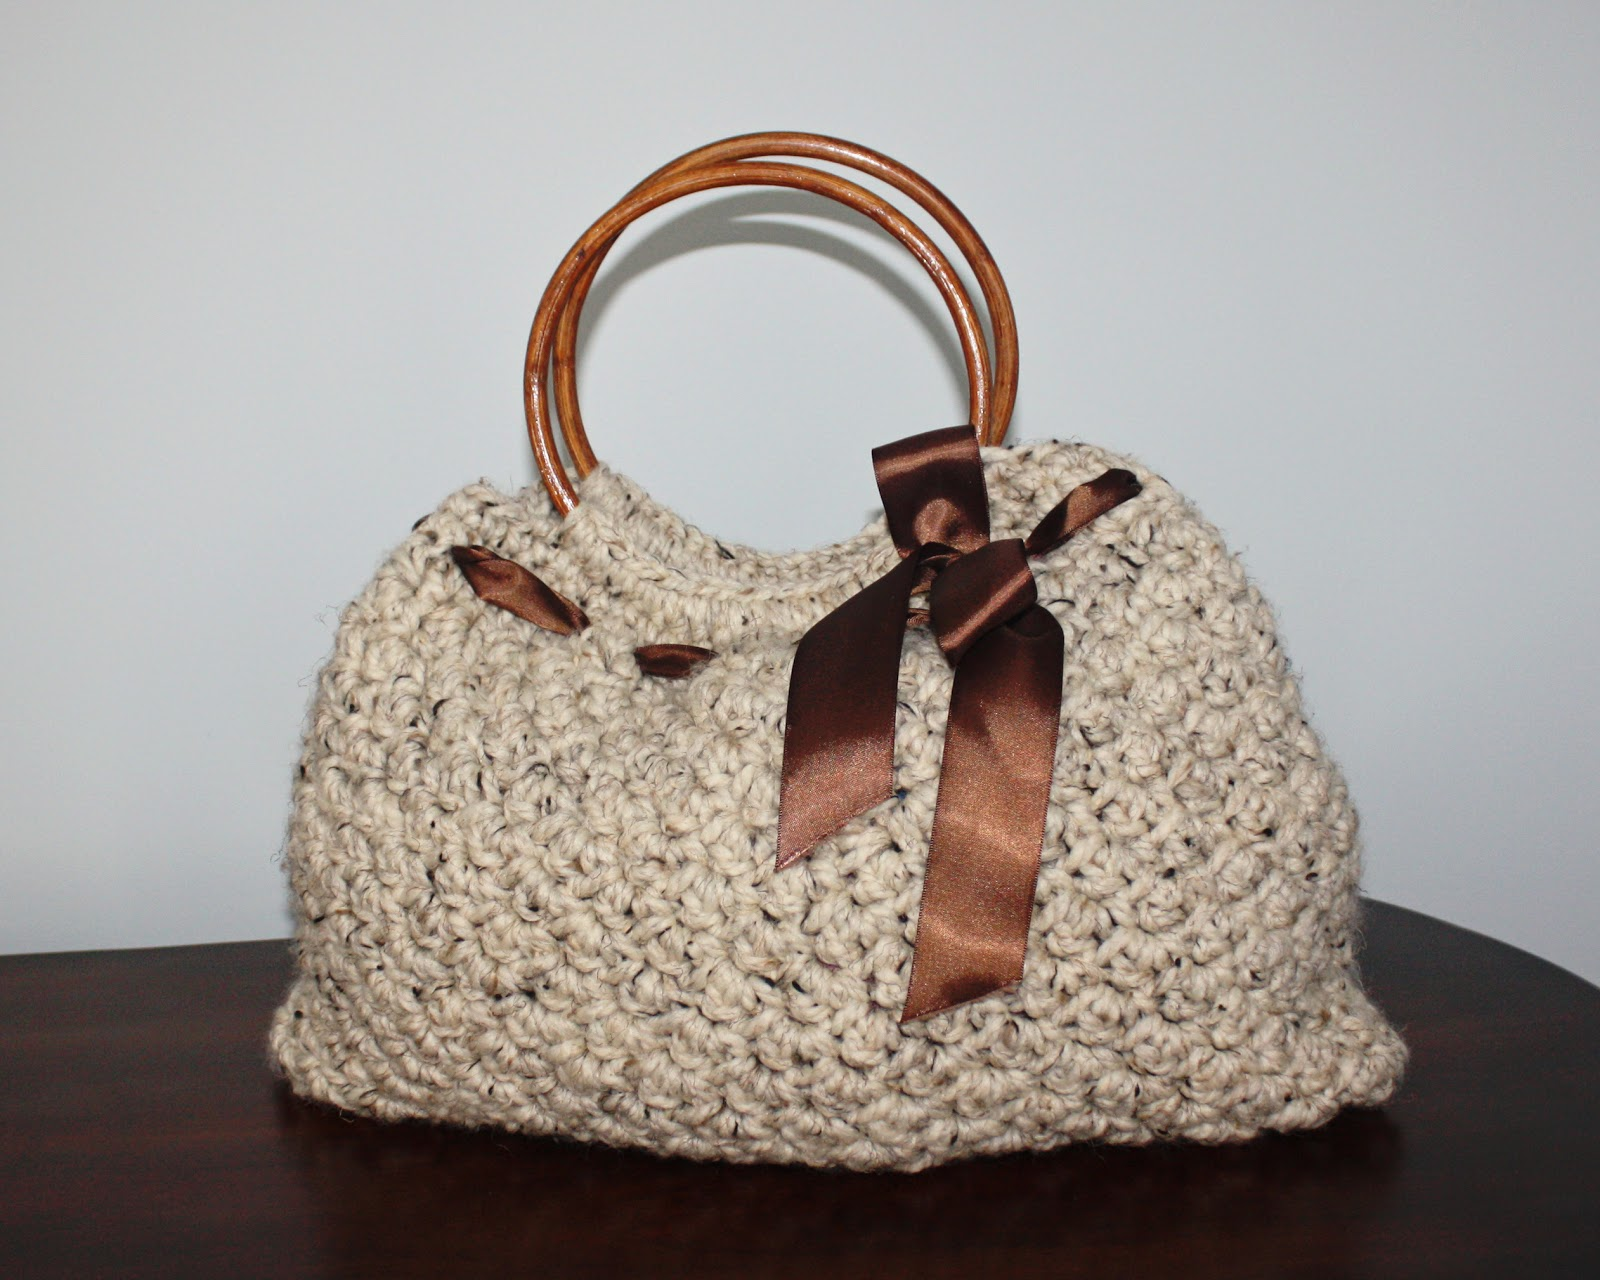 Crochet Handbag Tutorial : Pretty Darn Adorable Crochet: Crochet Handbag/Purse